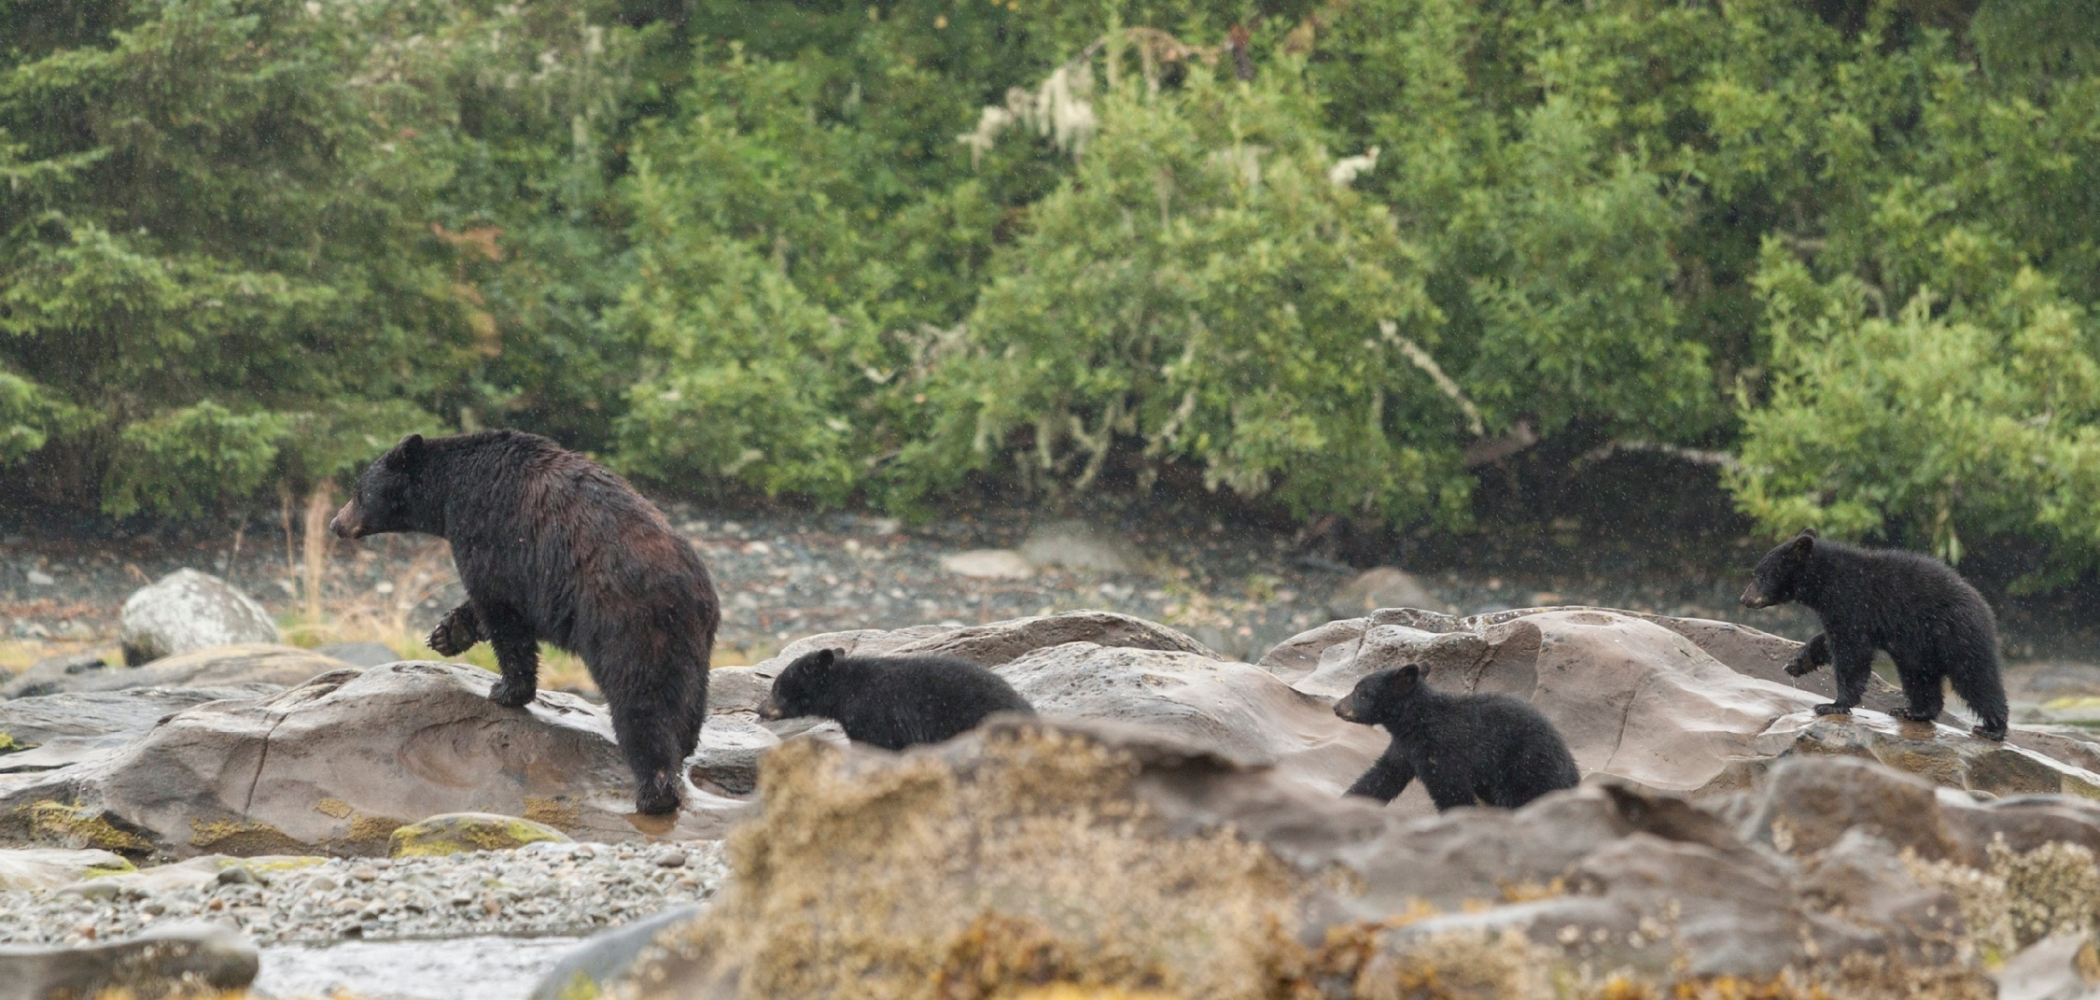 A family of grizzly bears walking through a river